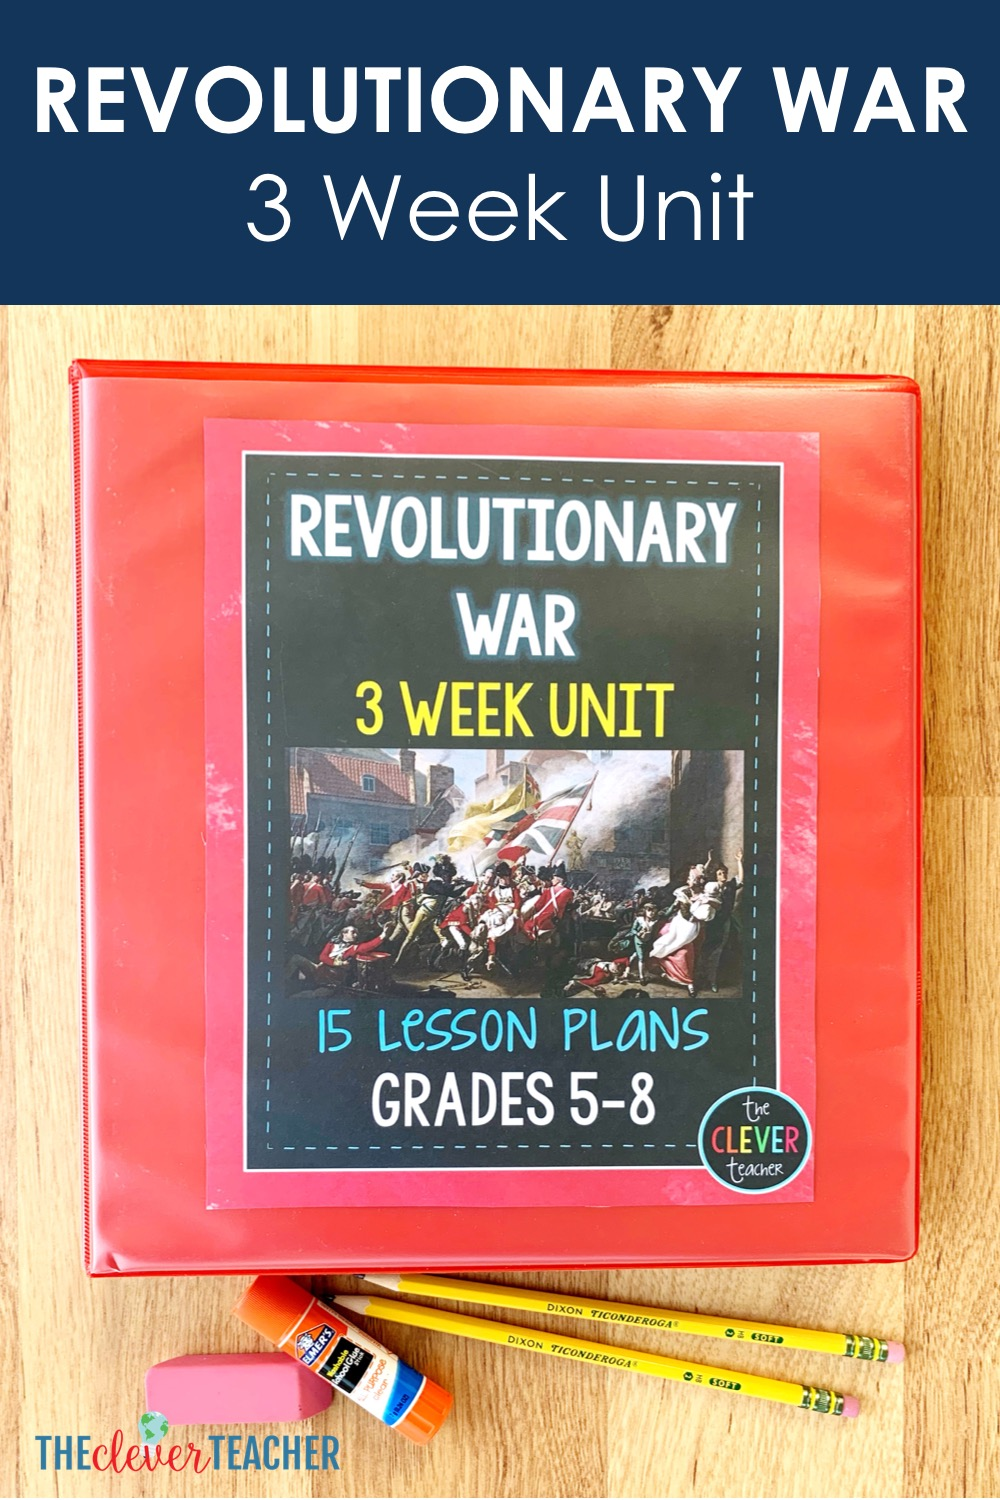 Revolutionary War 3 Week Unit